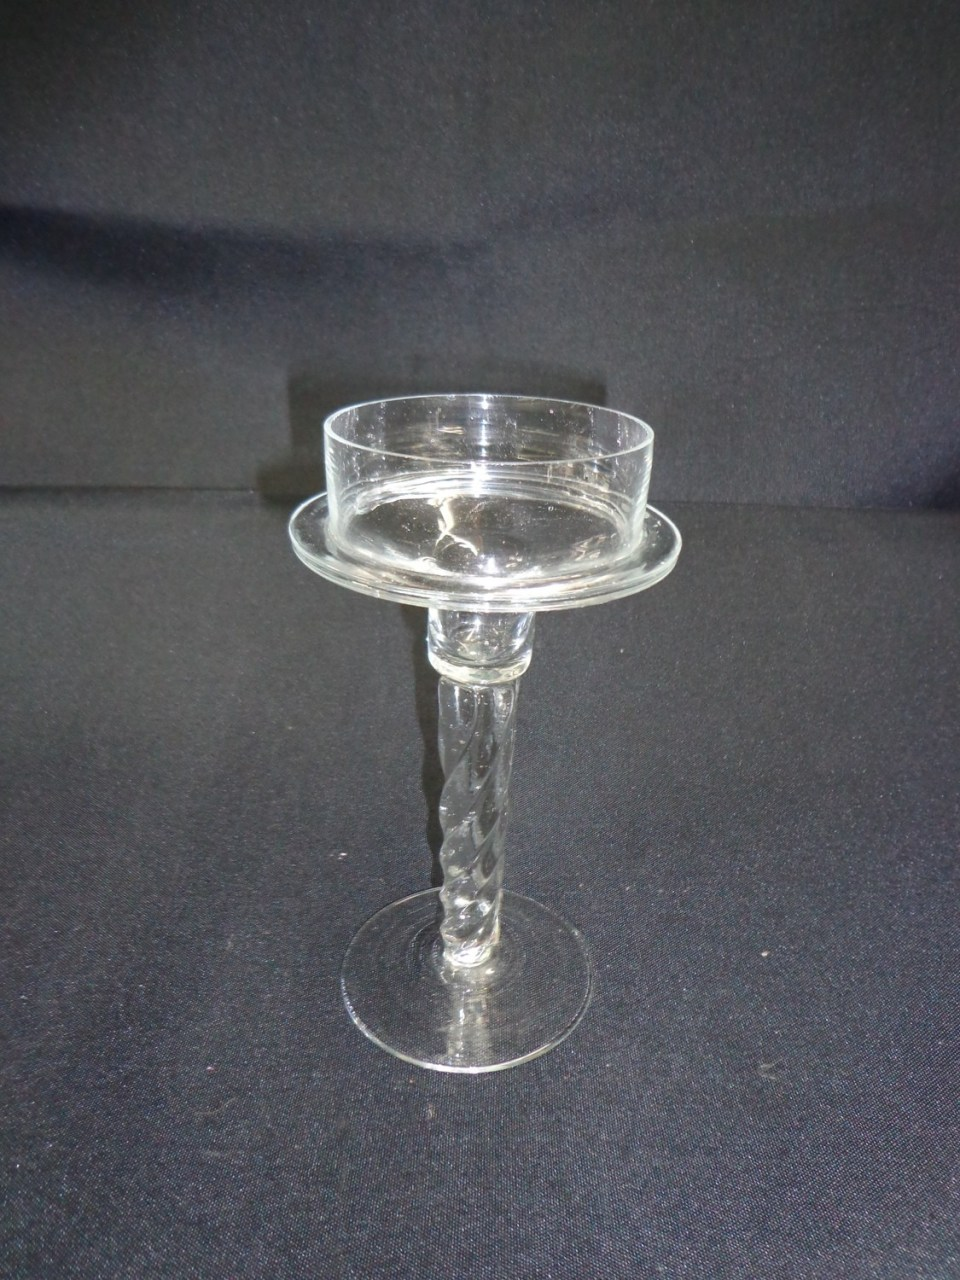 Candle Holder Glass - For Pillar Candle 7.5